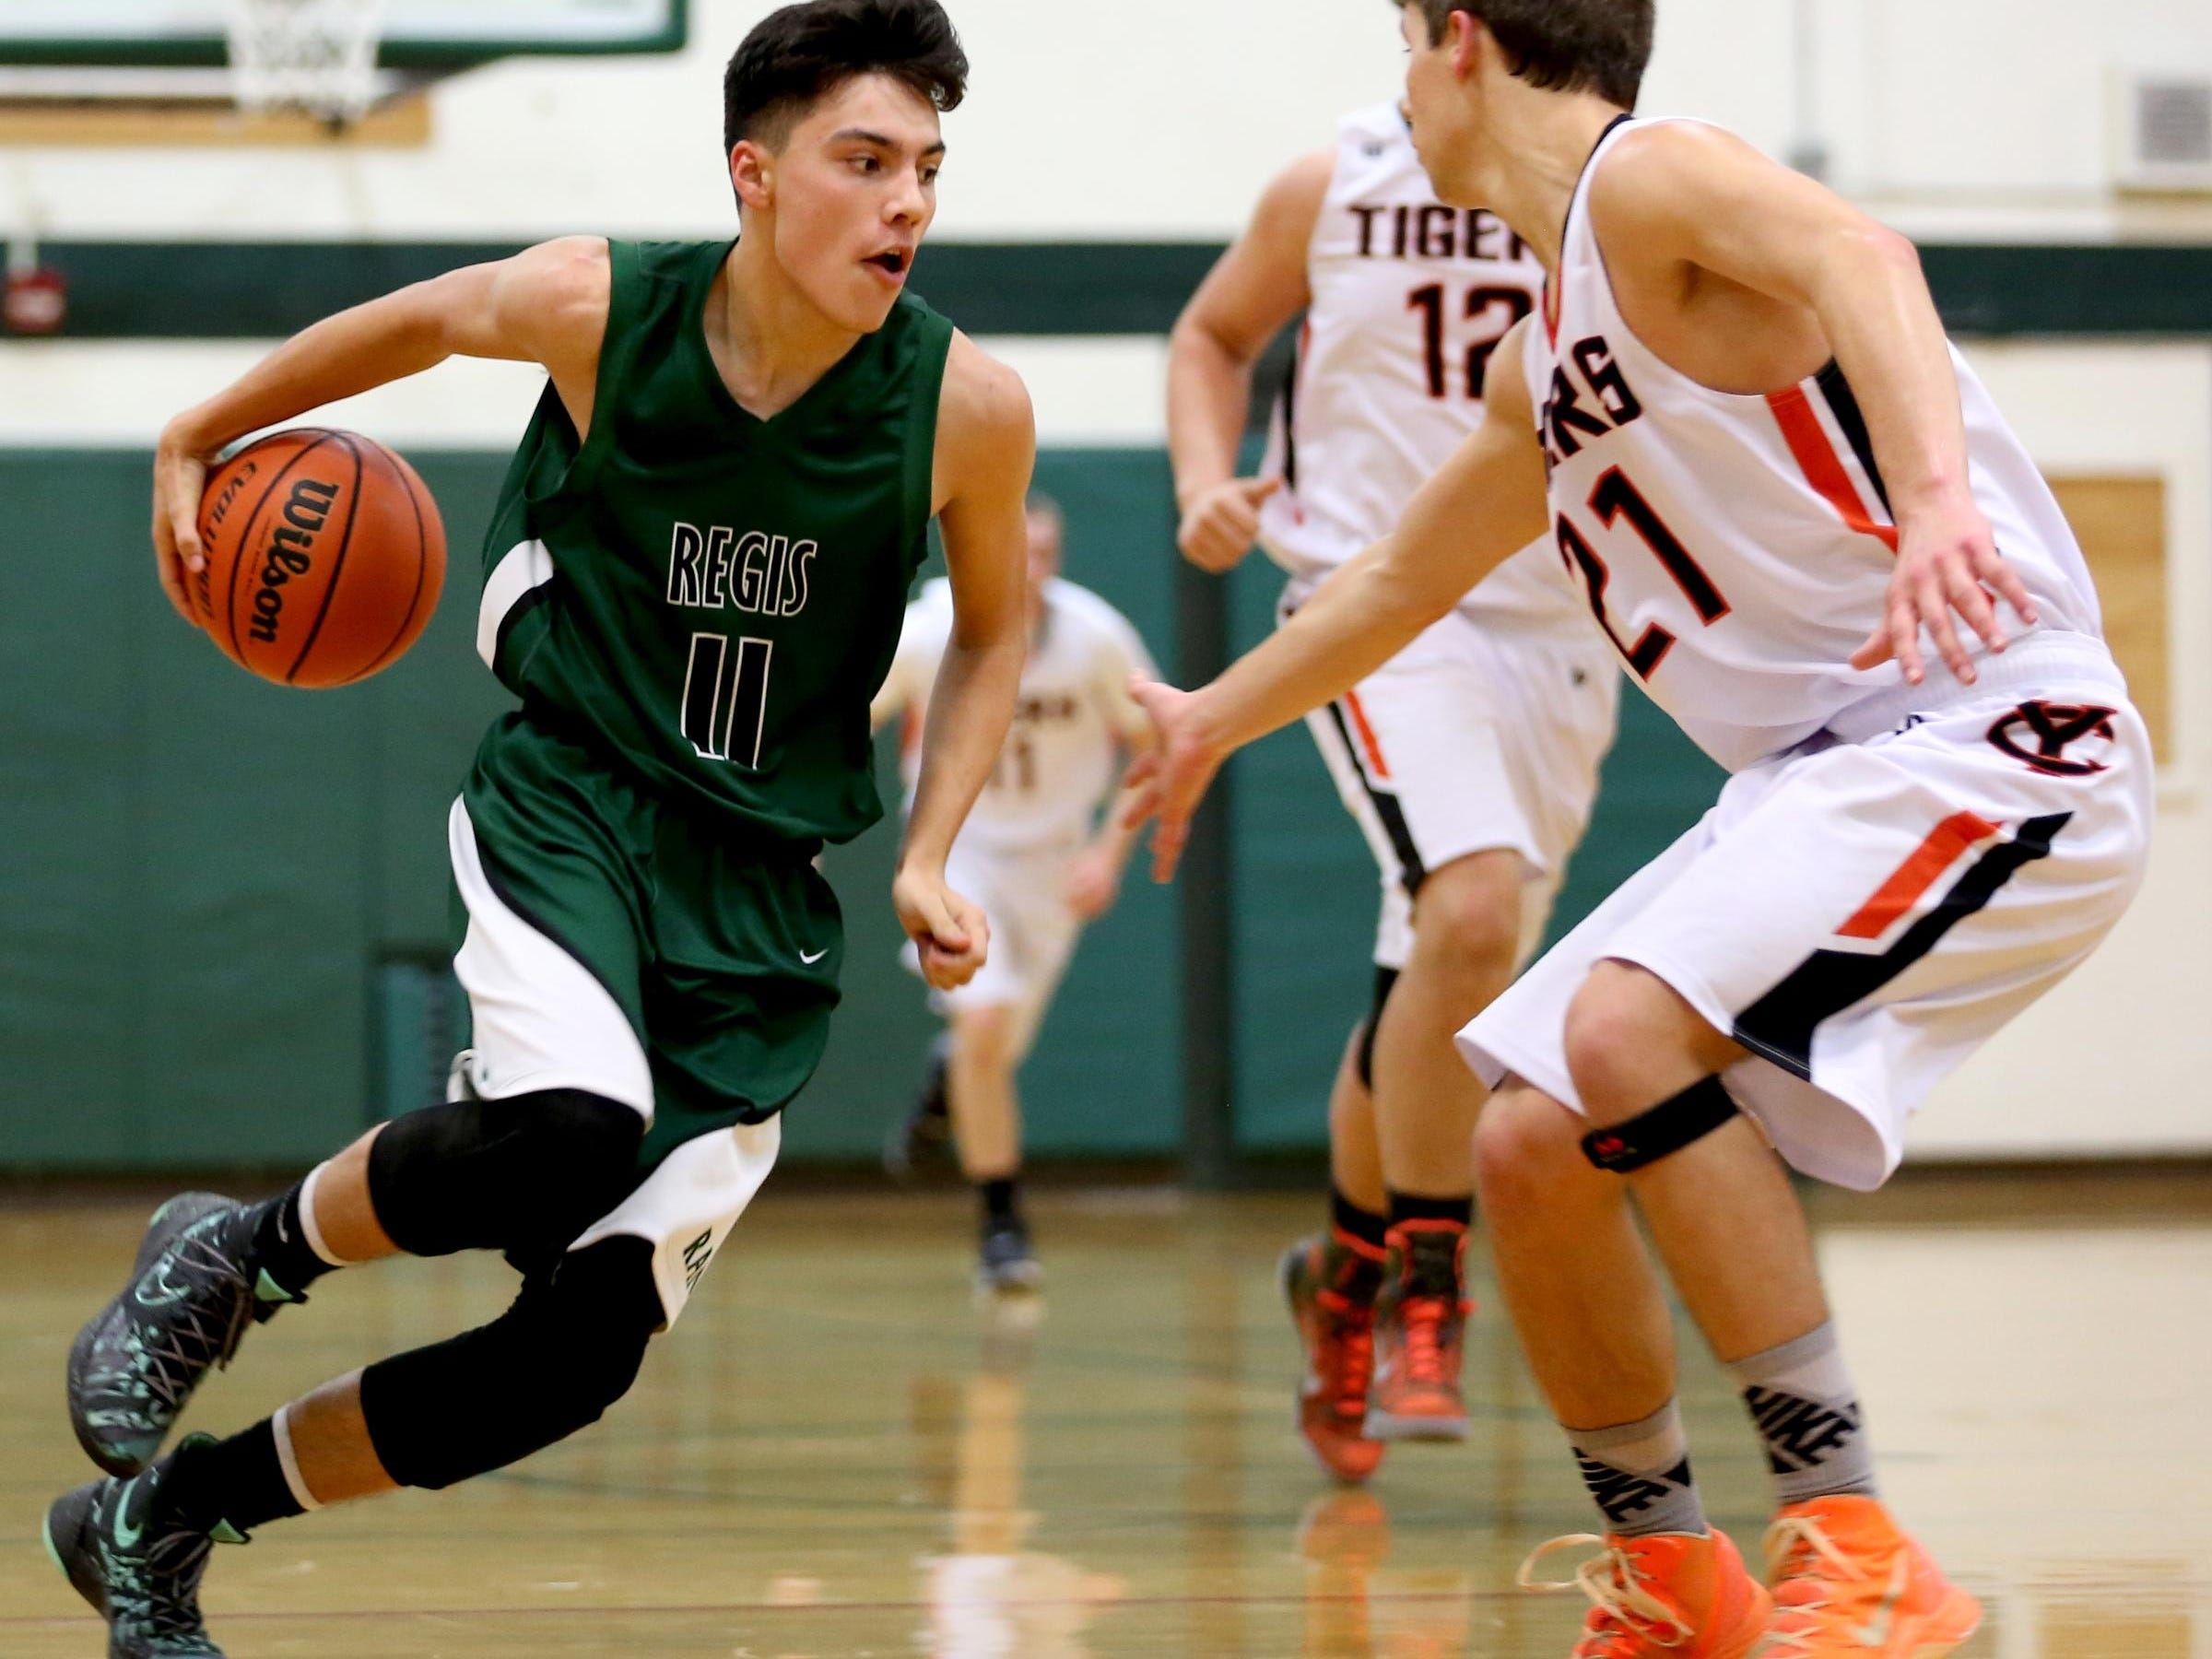 Regis' Brandon Piete (11) moves past Yamhill-Carlton's Luca Quierolo (21) in the second half of the Regis vs. Yamhill-Carlton boy's basketball game in the first round of the North Marion Holiday Classic at North Marion High School in Aurora on Thursday, Dec. 17, 2015. Regis won the game 59-44 and moves on to play in the semifinals at 8 p.m. on Friday.